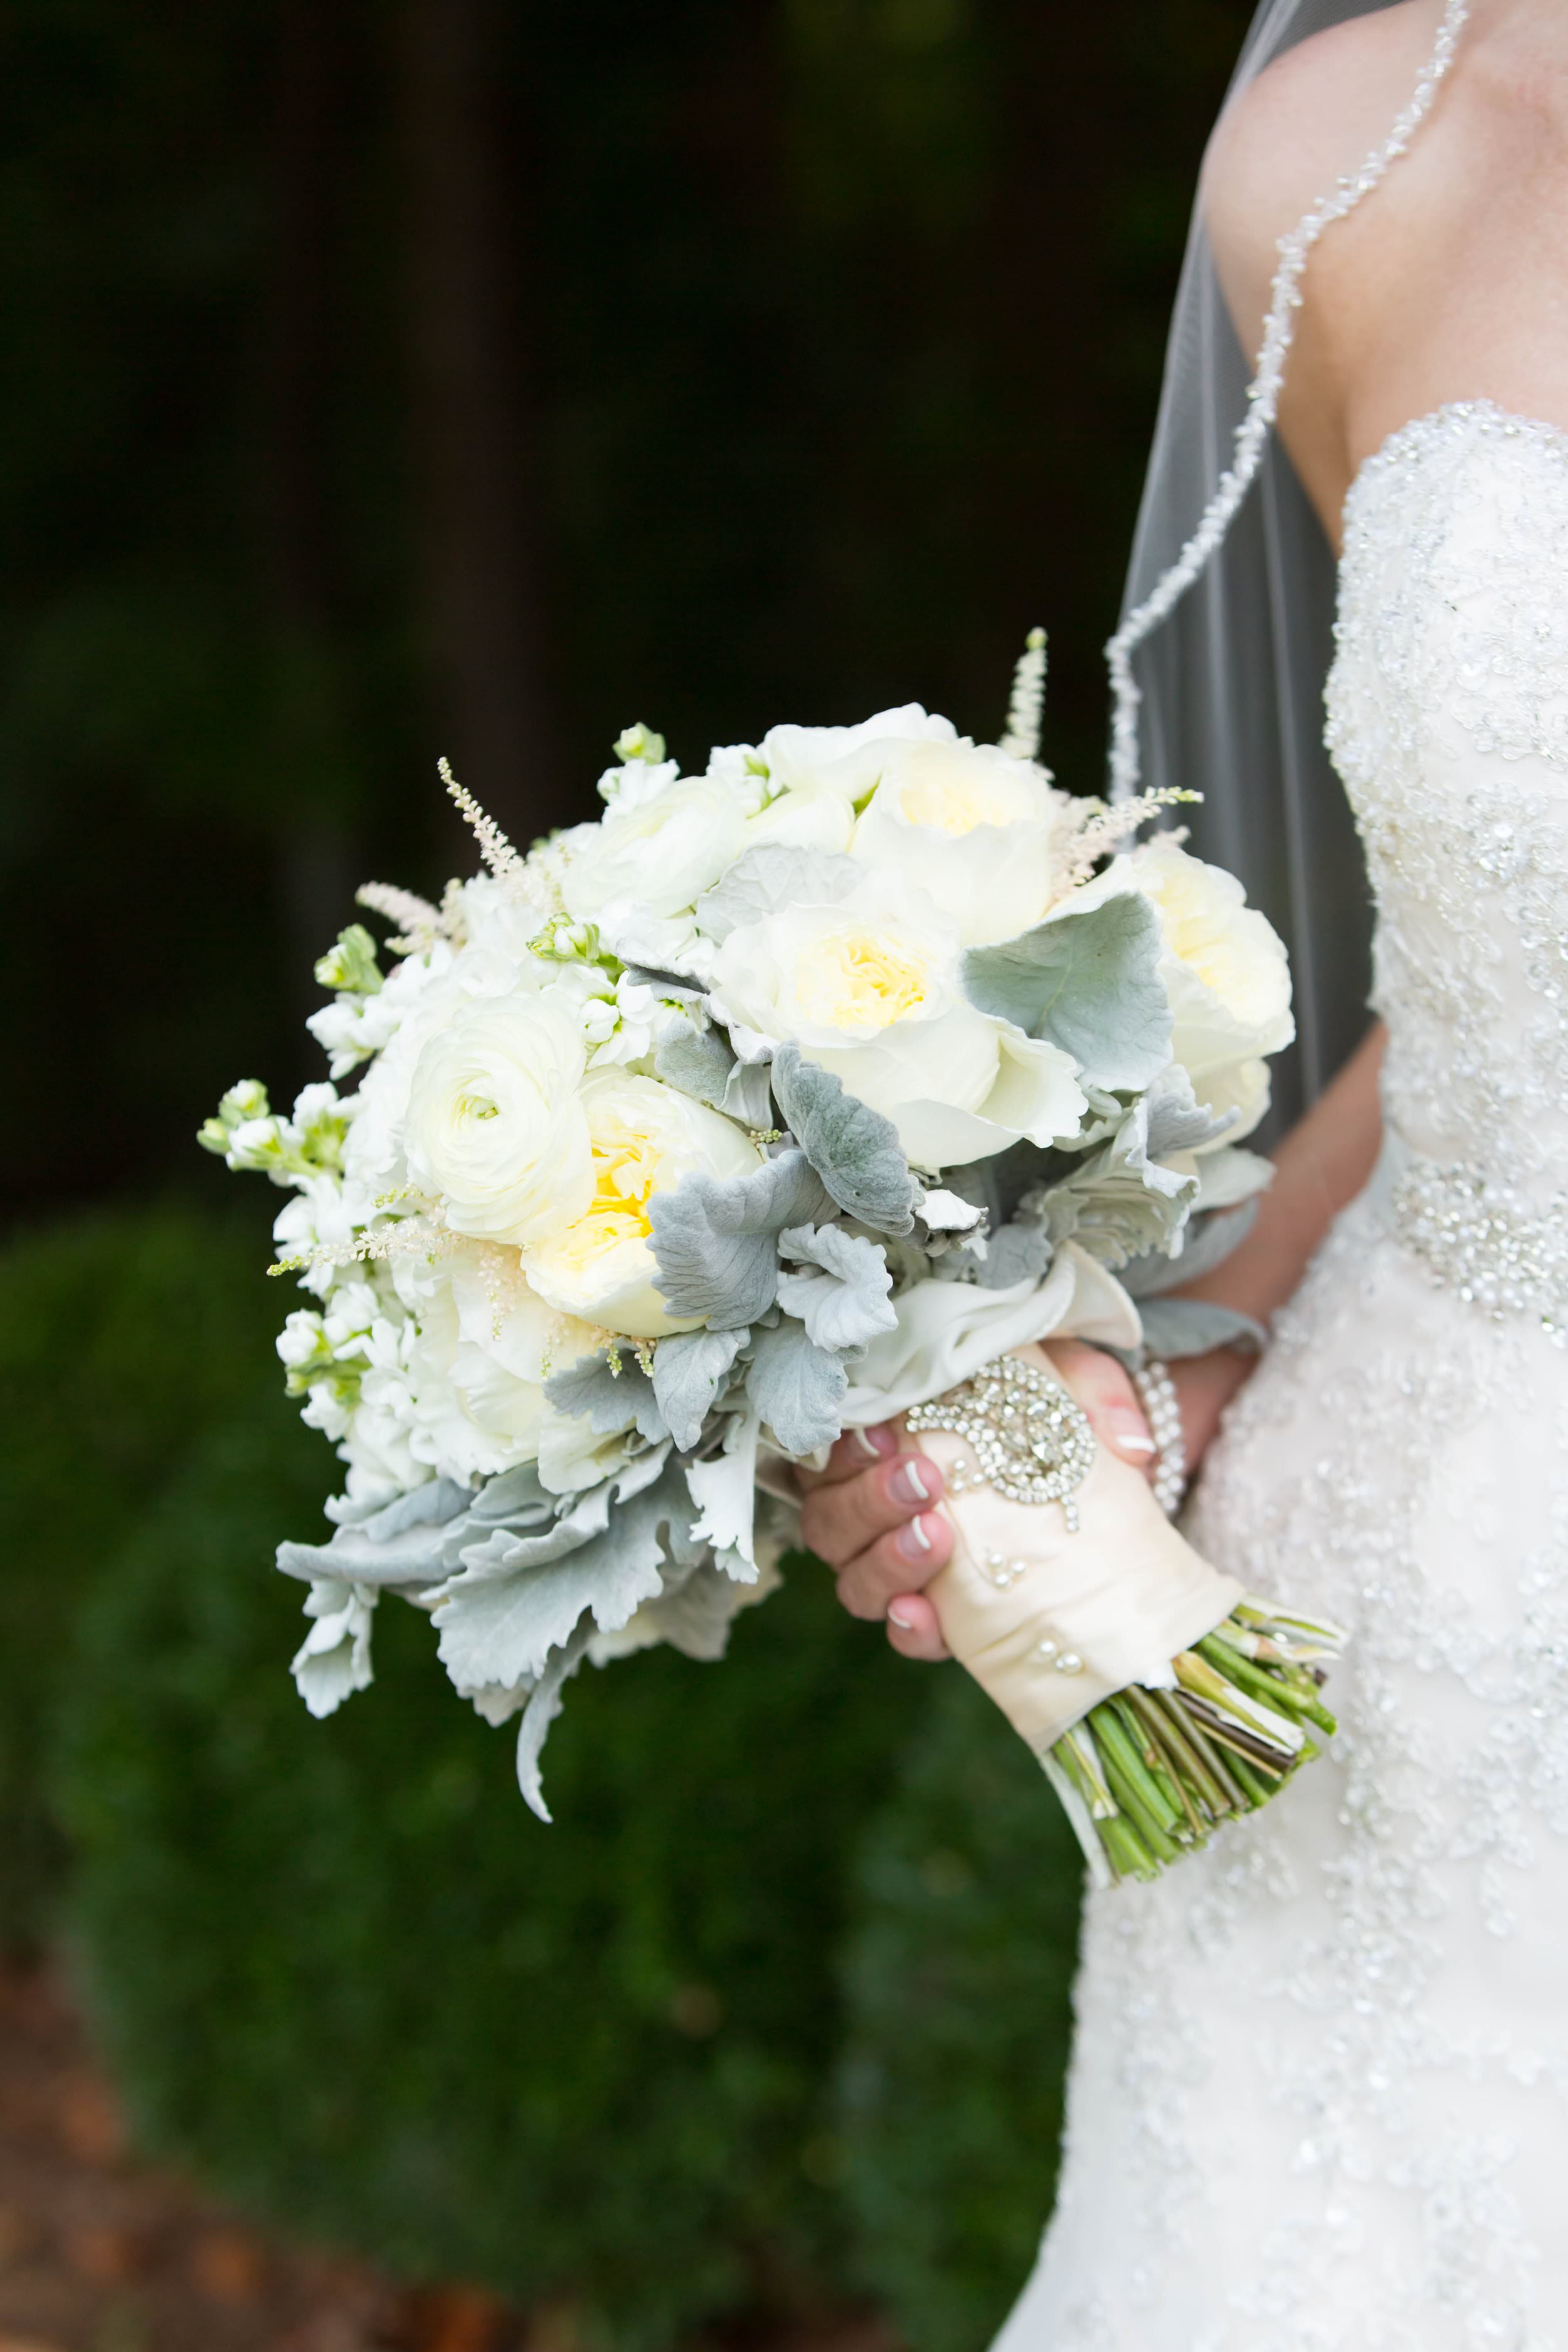 Sage and white bridal bouquet by Atlanta wedding florist  Alpharetta Flower and Garden Market . If you love this bouquet, you have to take a look at the rest of the details from her  timeless Southern wedding at the Country Club of the South .